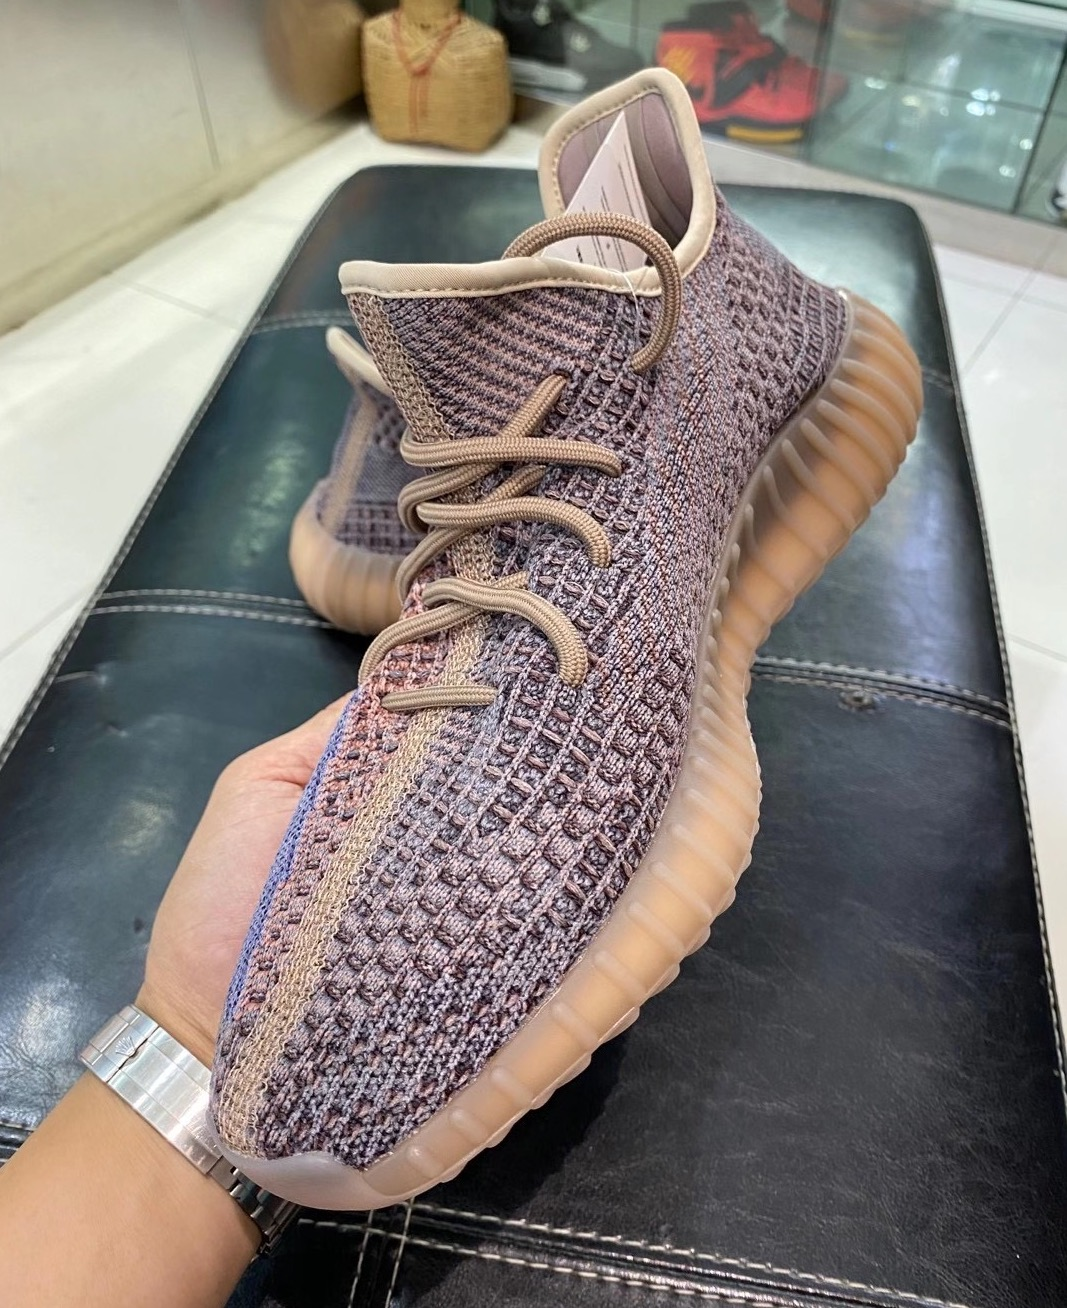 adidas-Yeezy-Boost-350-V2-Fade-H02795-Release-Date-2.jpeg